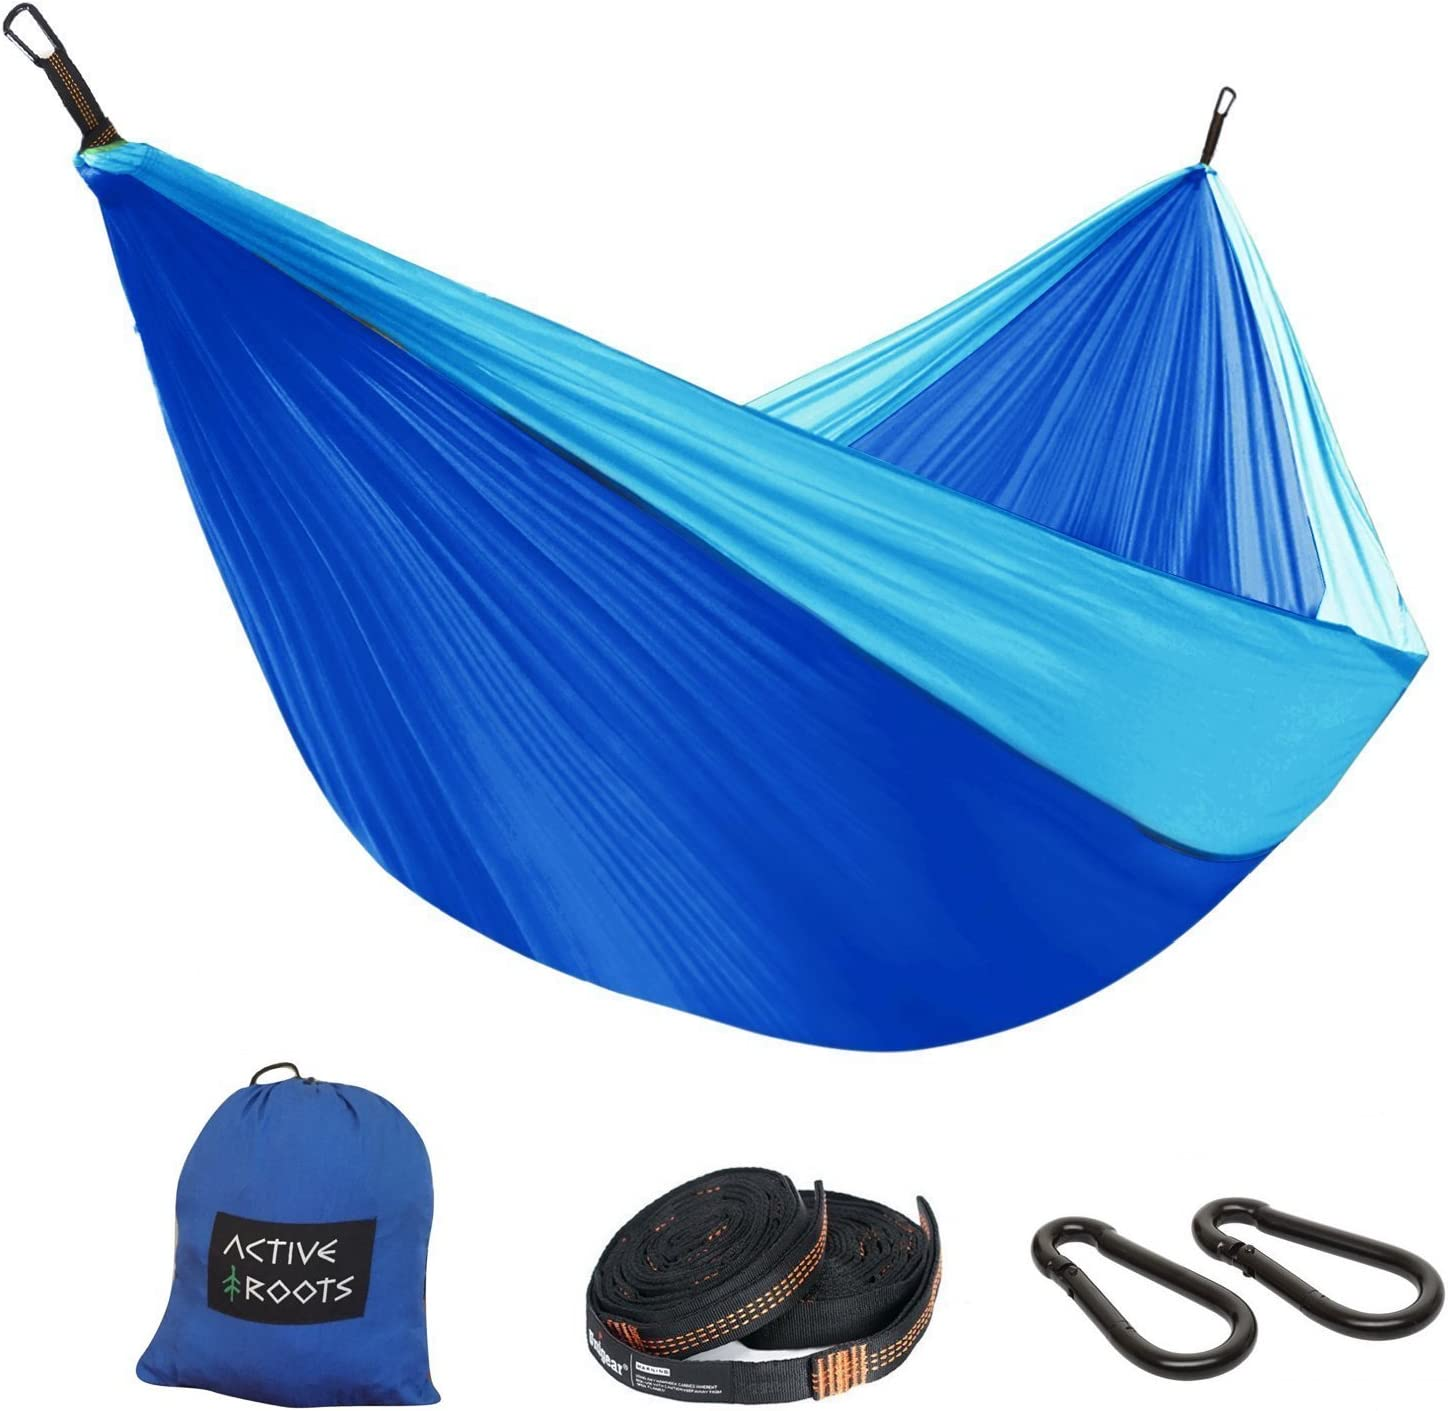 Portable Hammock Active Roots Double Camping Hammock with Tree Straps Outdoor Parachute Nylon Lightweight Hammock for Backpacking Travel Indoor